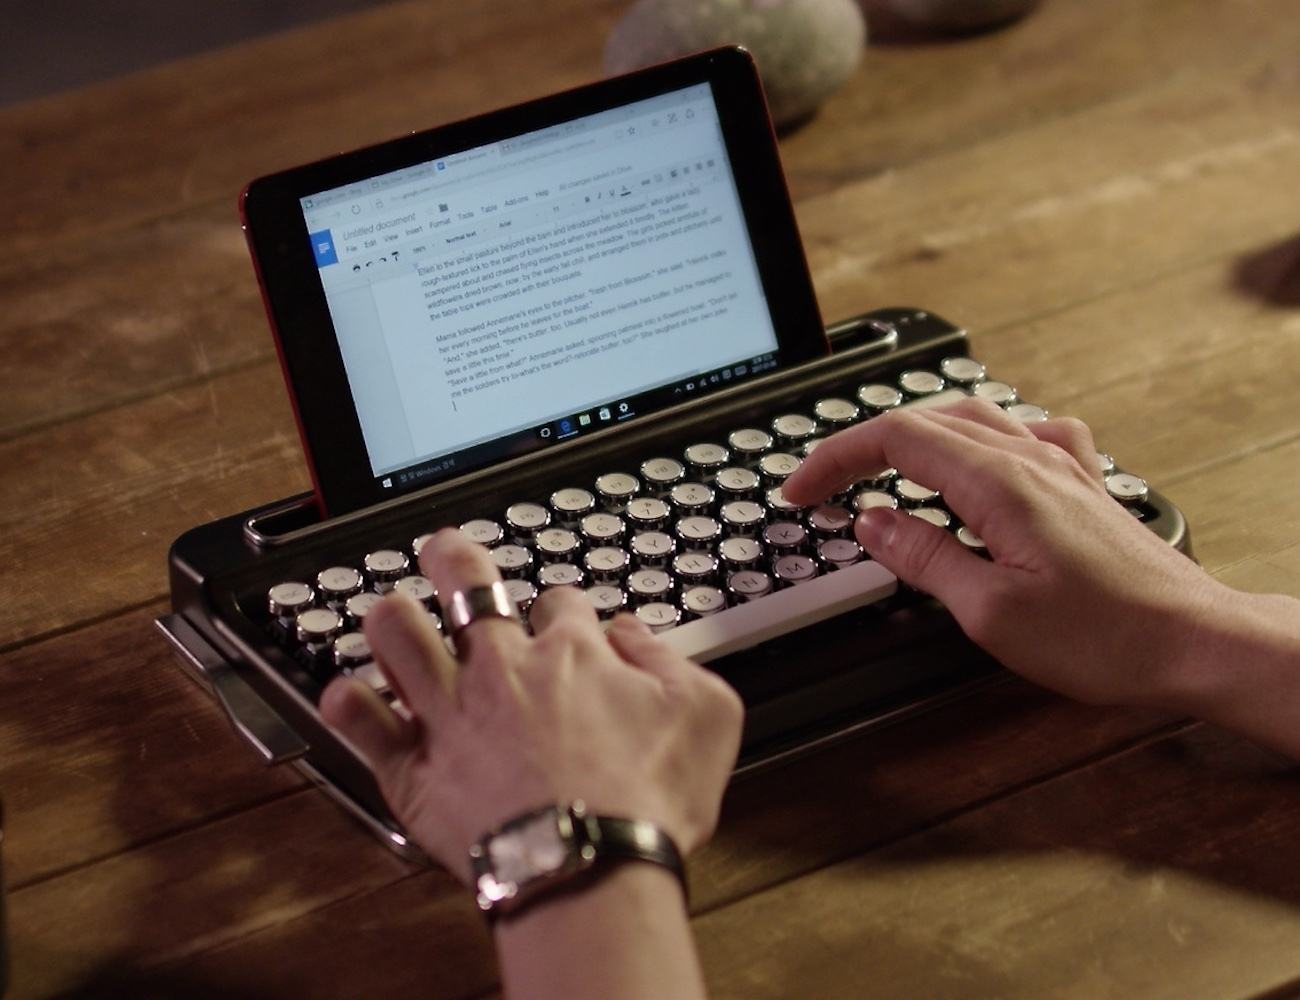 Penna Retro Bluetooth Keyboard 187 Gadget Flow